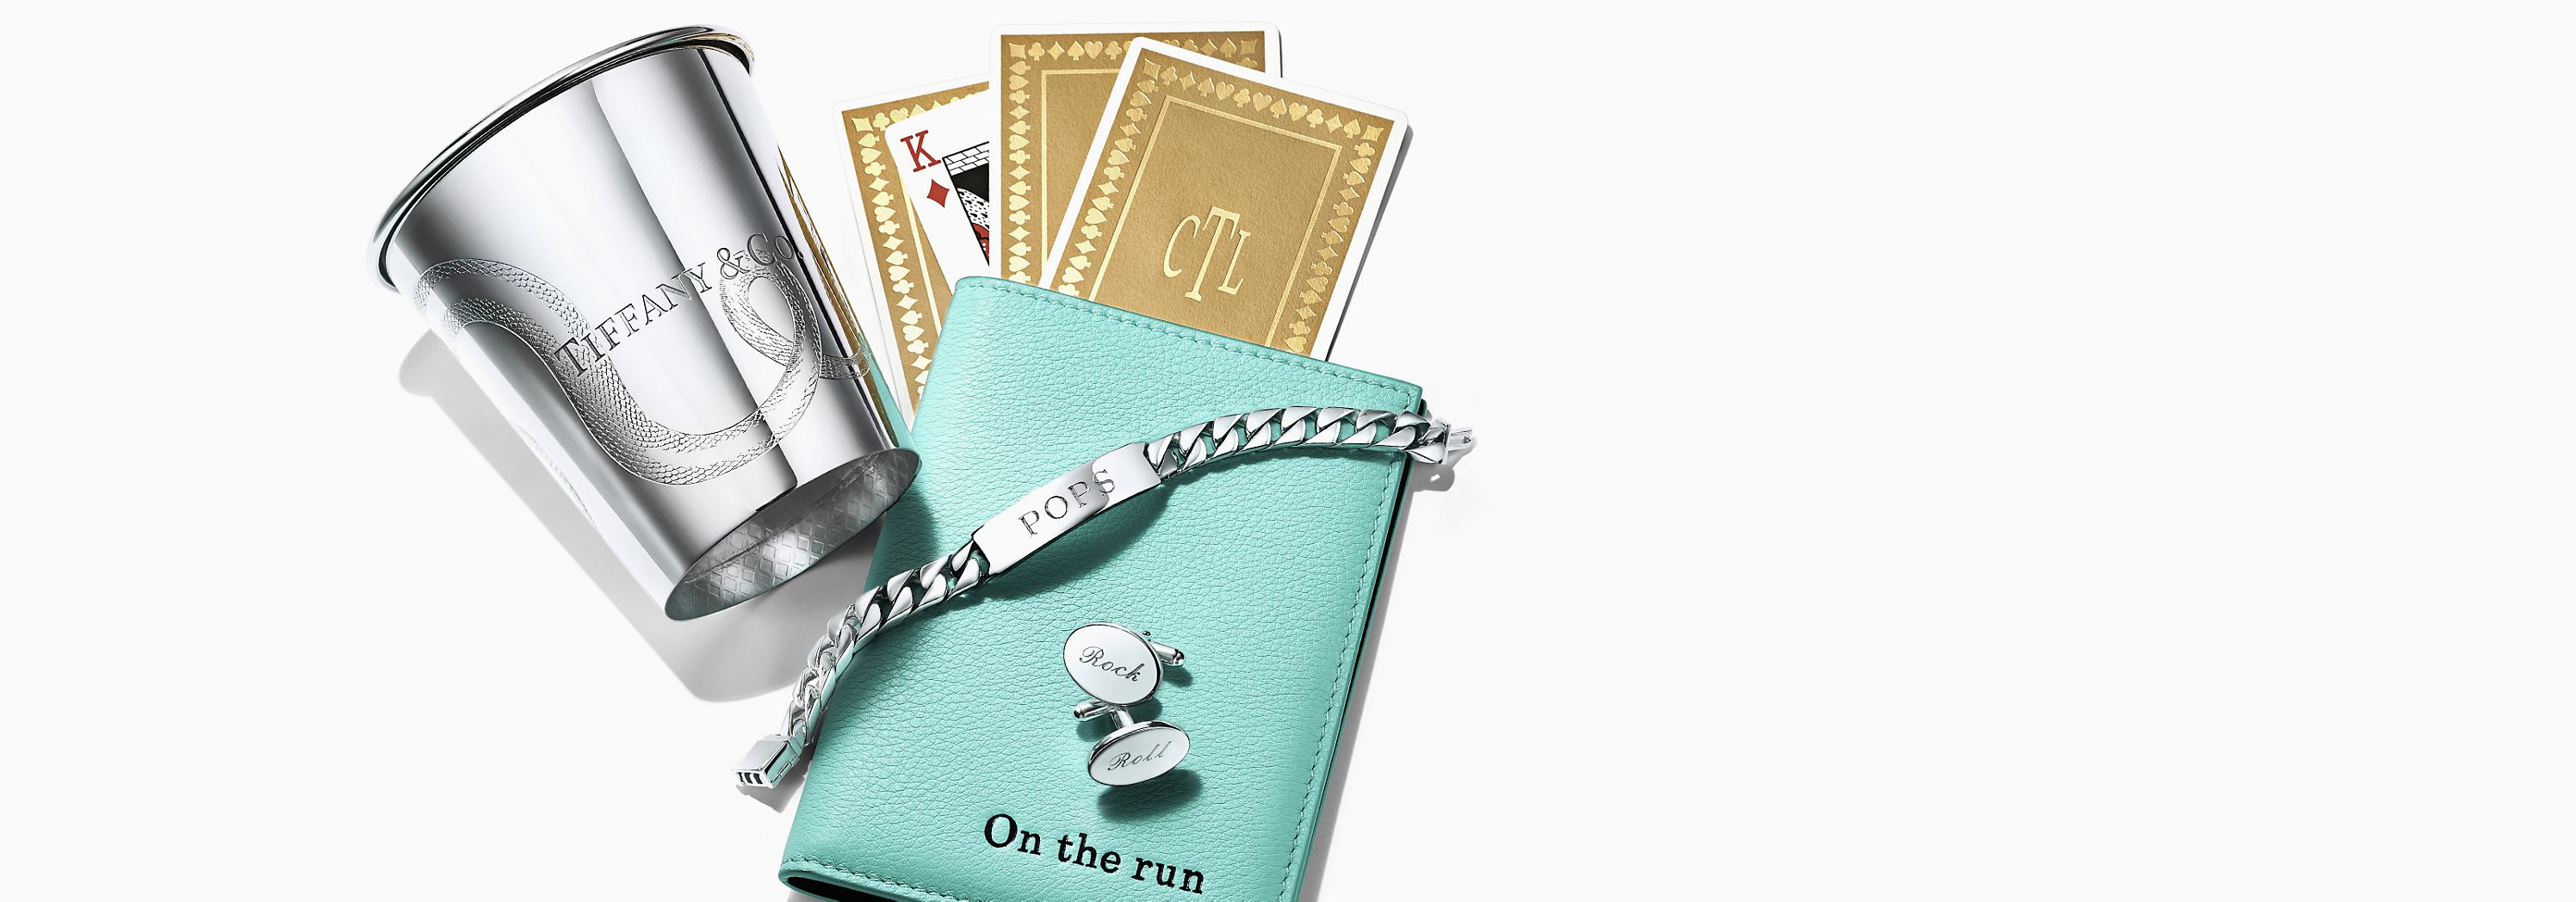 Tiffany & Co. Engravable Business Gifts